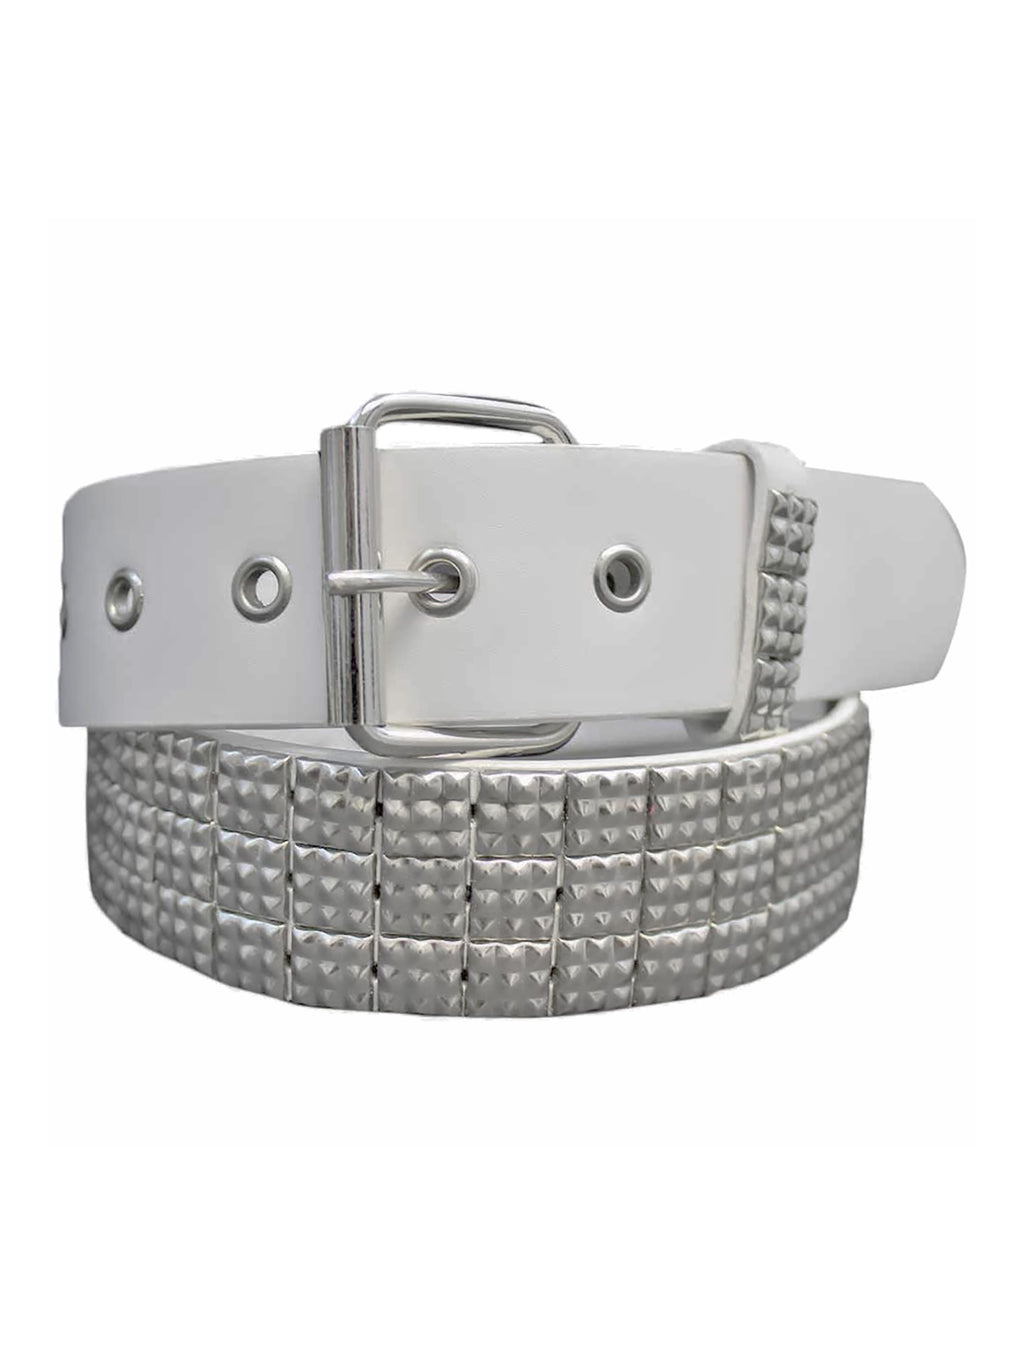 Pyramid Studded 3 Row Grommet Belt